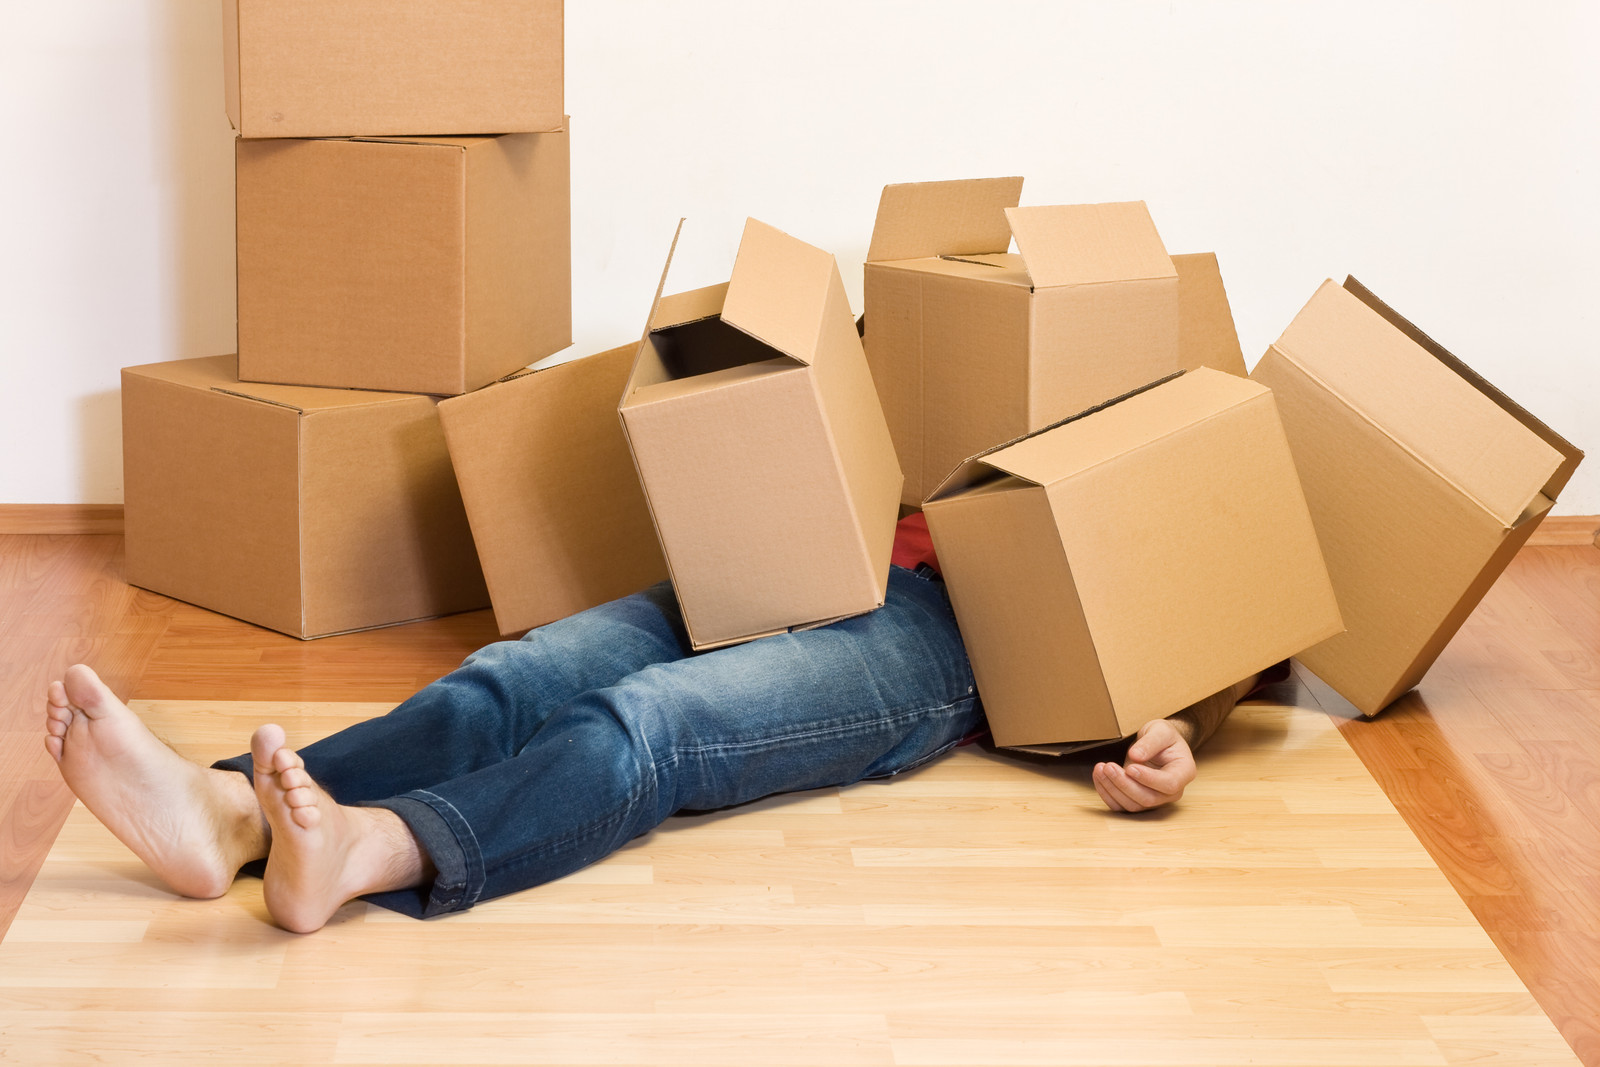 residential moving lubbock, lubbock residential moving service, moving residence